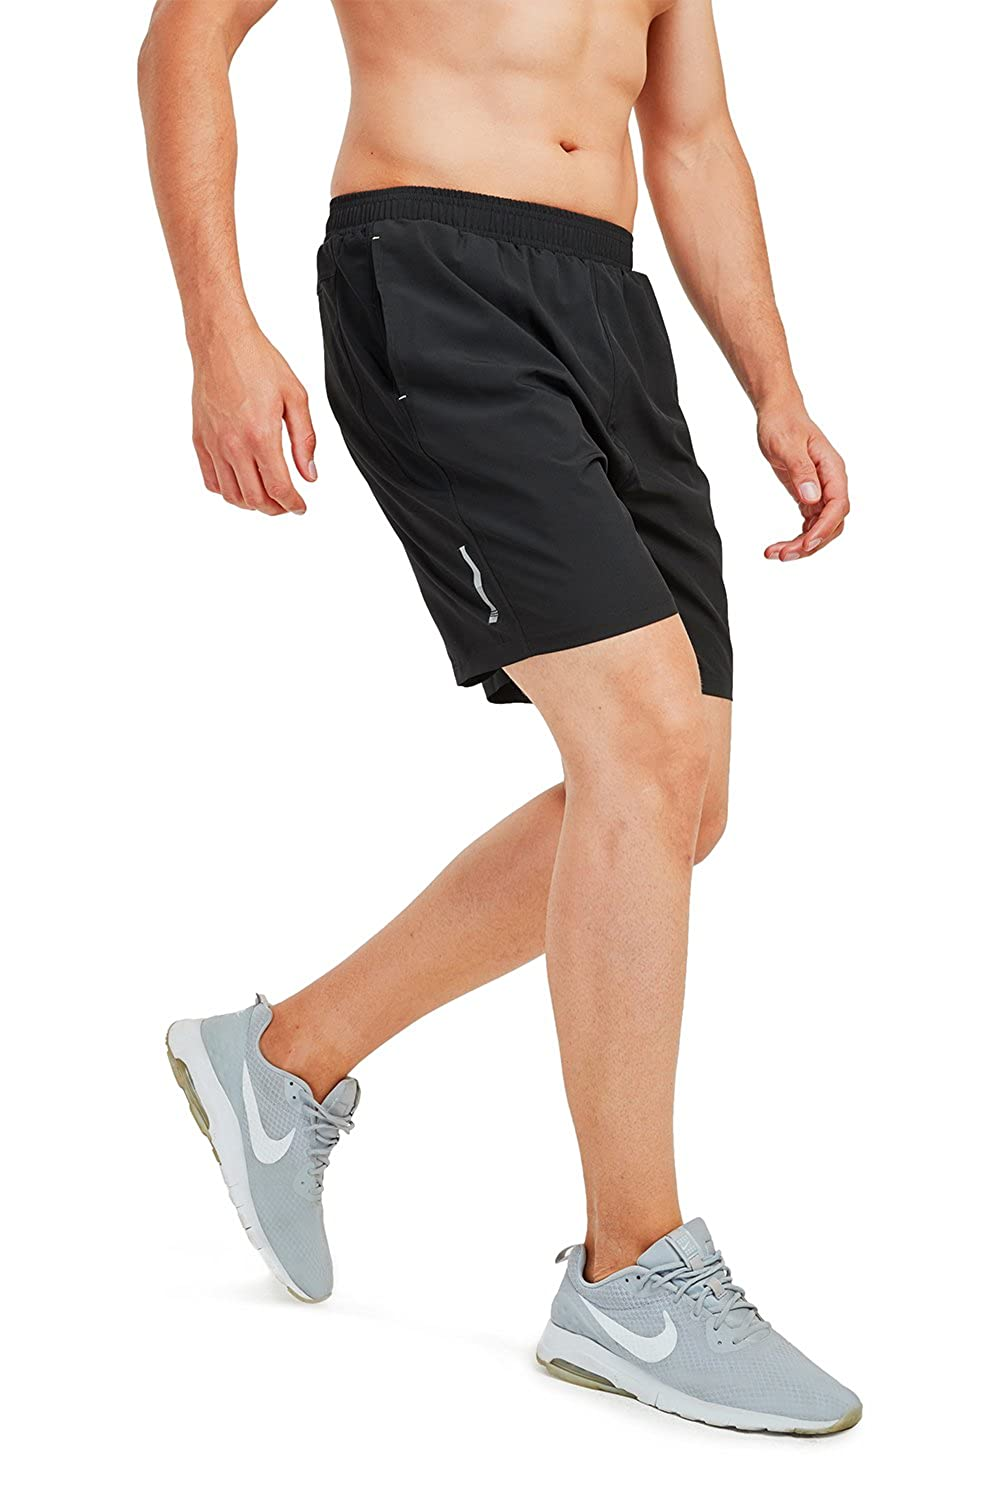 3b919364fd 7\ Safort Running Running Running Shorts(3 5 7 ) for Man, Two Pockets,  Quick Dry, Breathable, Active Shorts for Gym, Workout, Training adff85